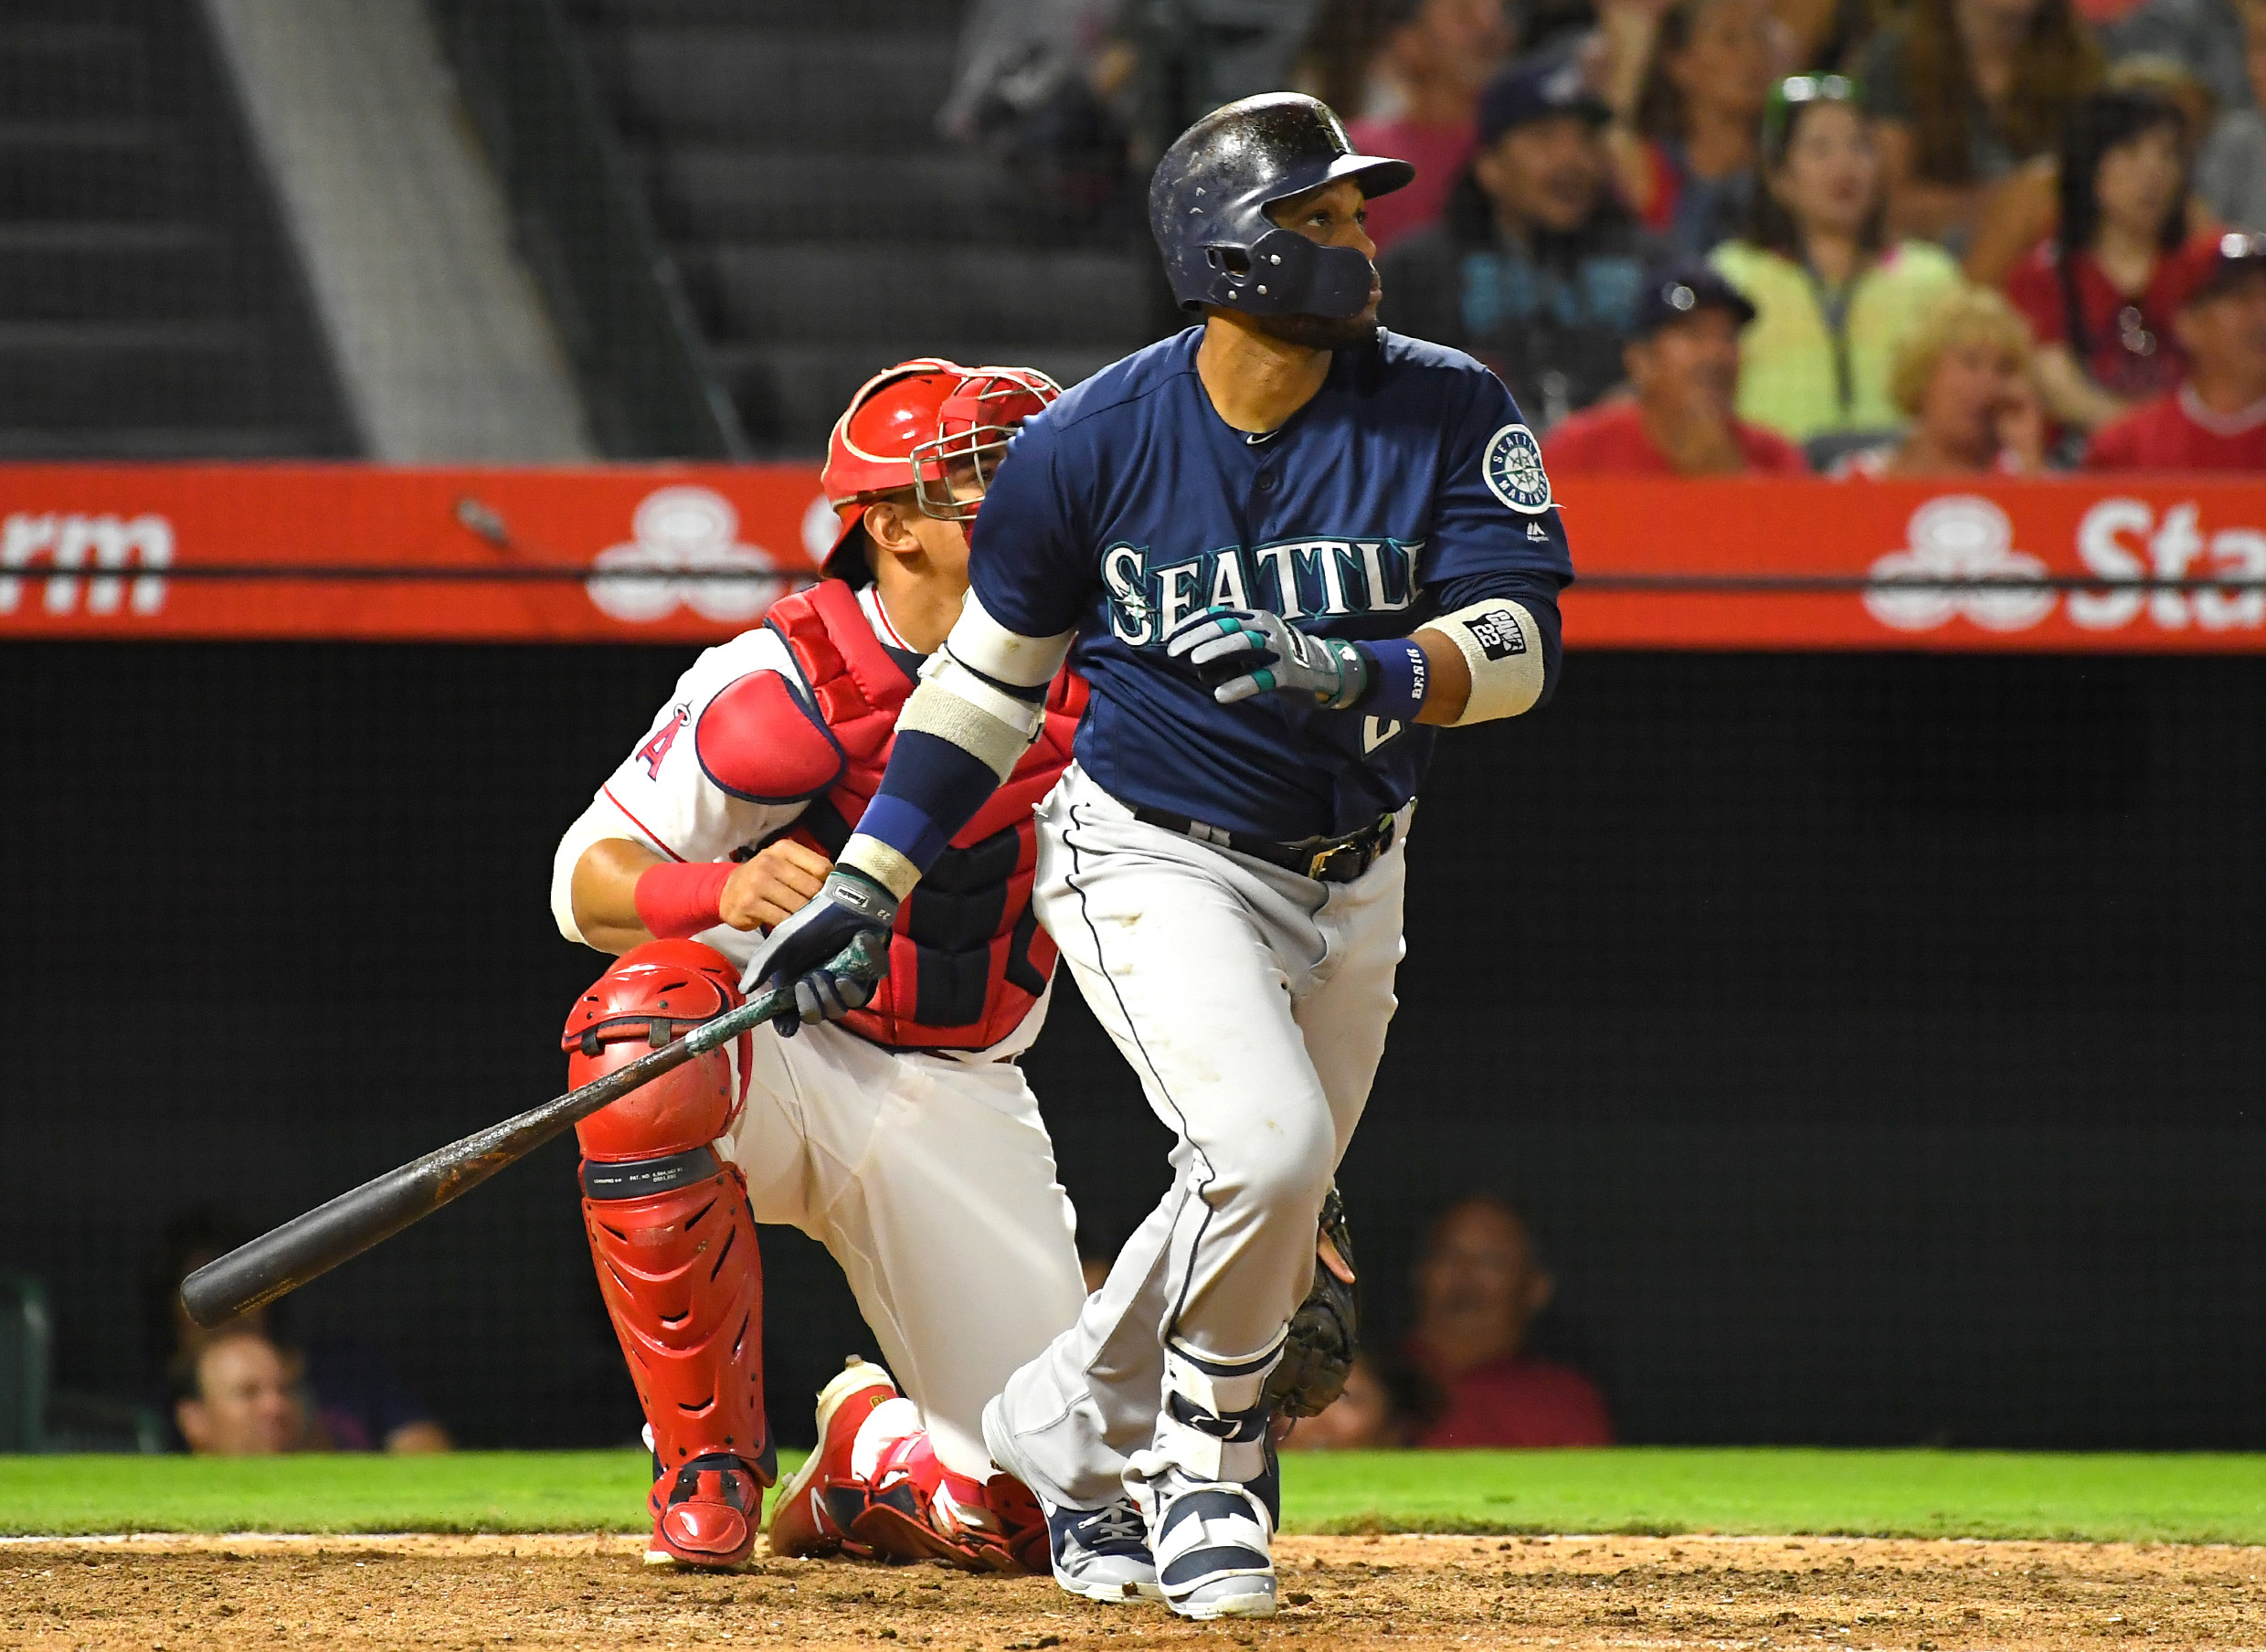 Report: New York Mets, Seattle Mariners Still Working On Details of Mega Trade